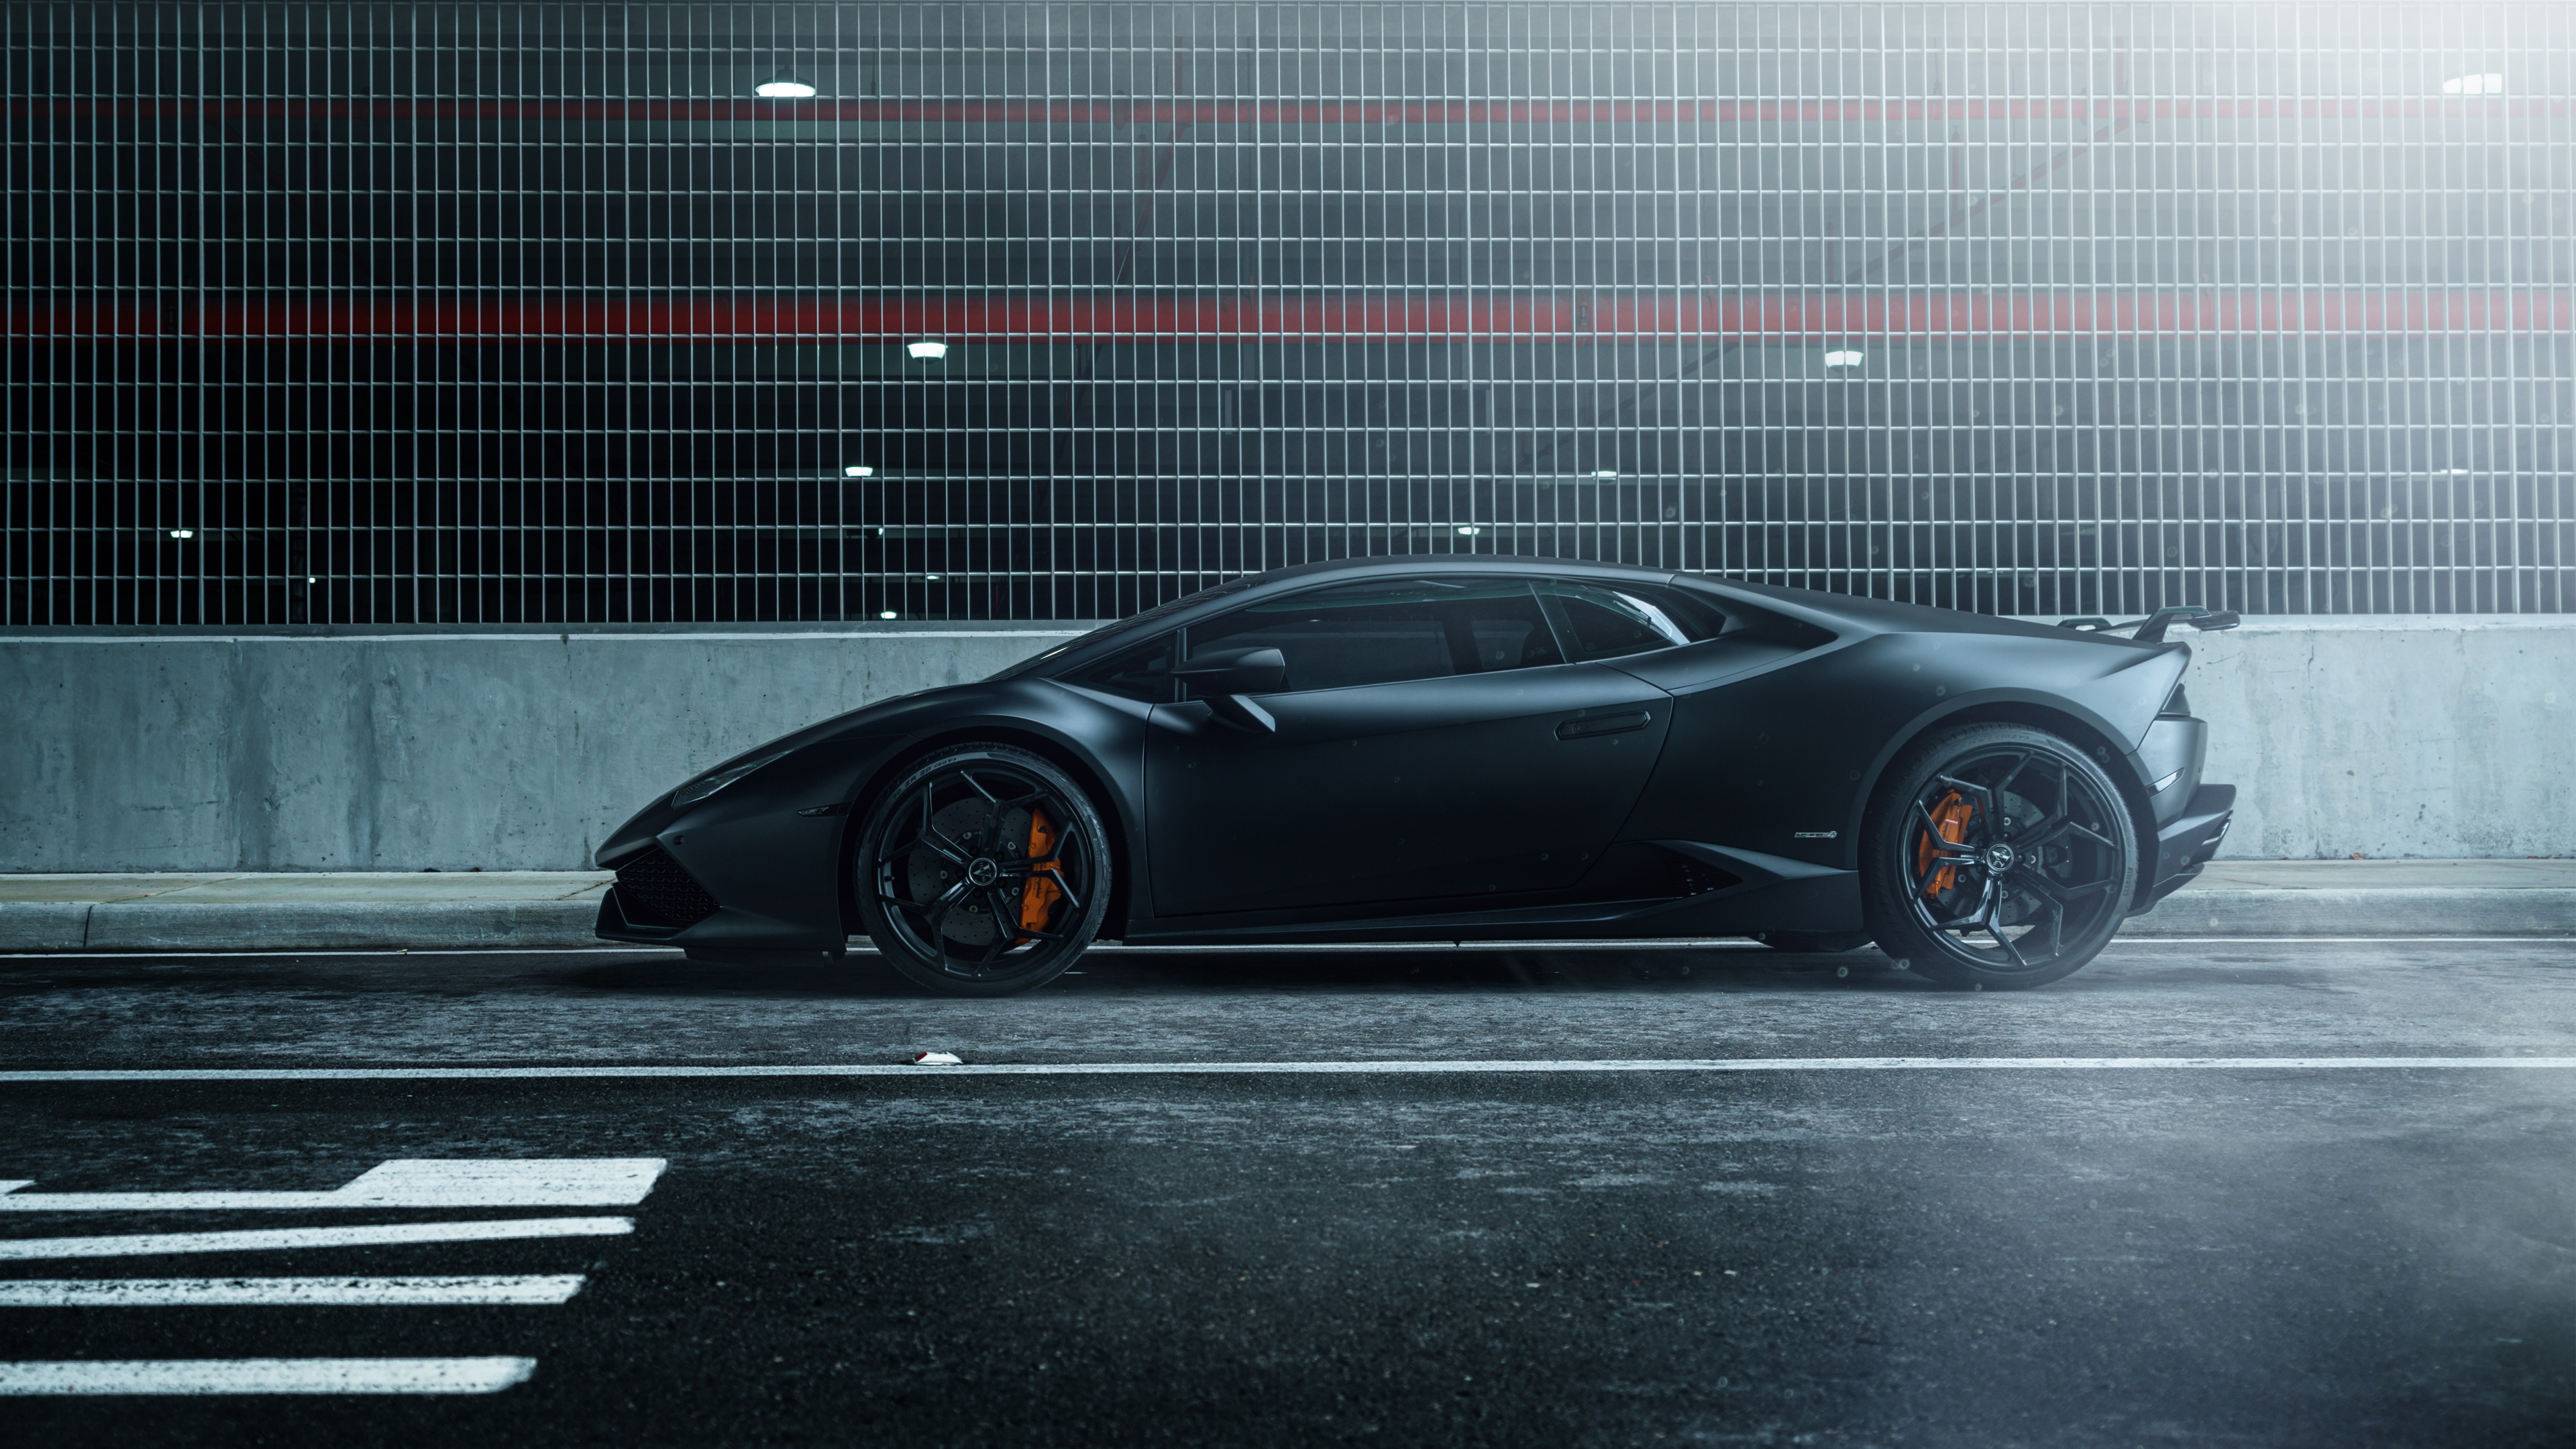 Lamborghini Huracan Vellano Mc Matte Black 4k Wallpaper Hd